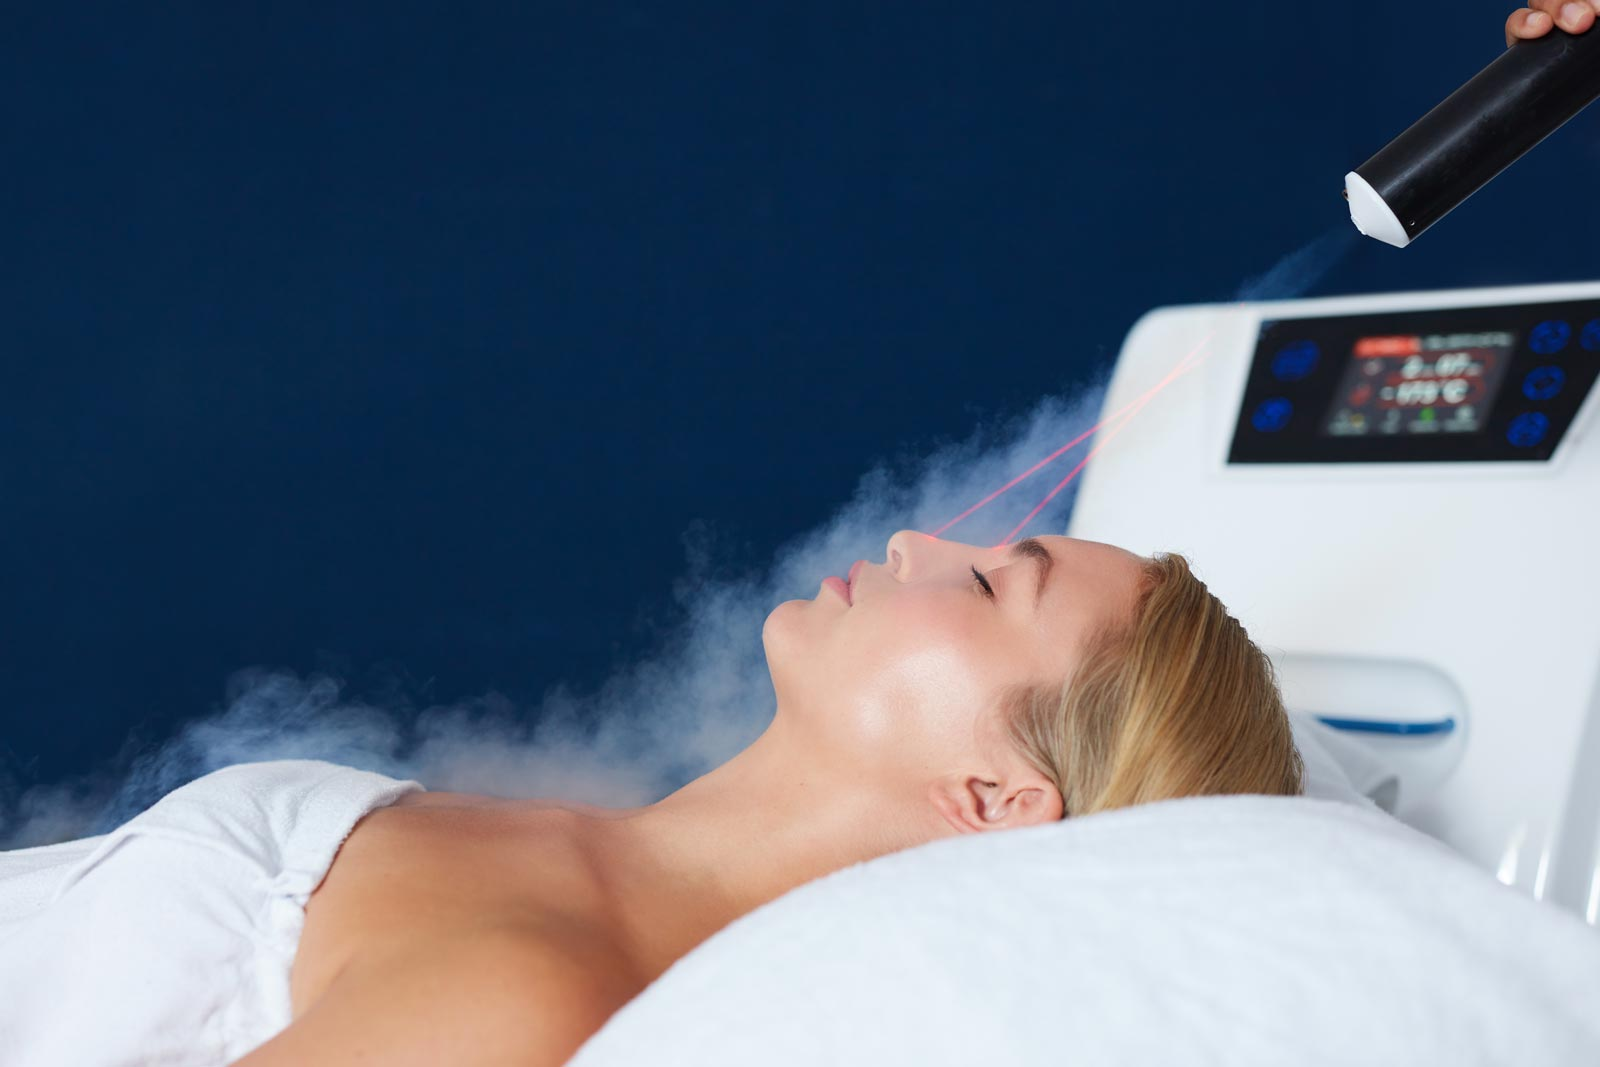 cryofacial Cryo Facial Treatments in Scottsdale